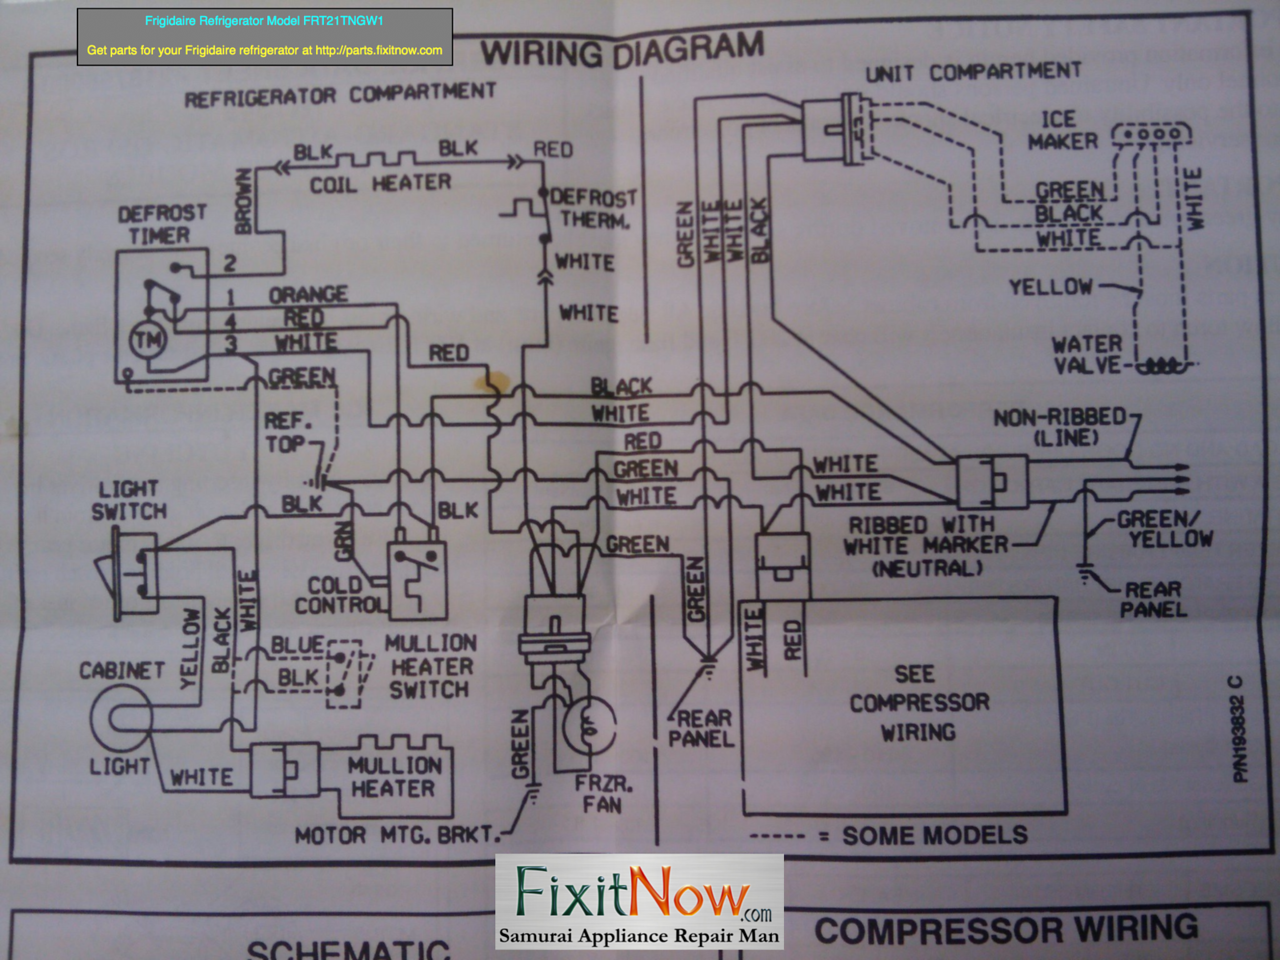 wiring diagrams and schematics appliantology rh appliantology smugmug com hotpoint wiring diagram Old Hotpoint Washer Diagrams